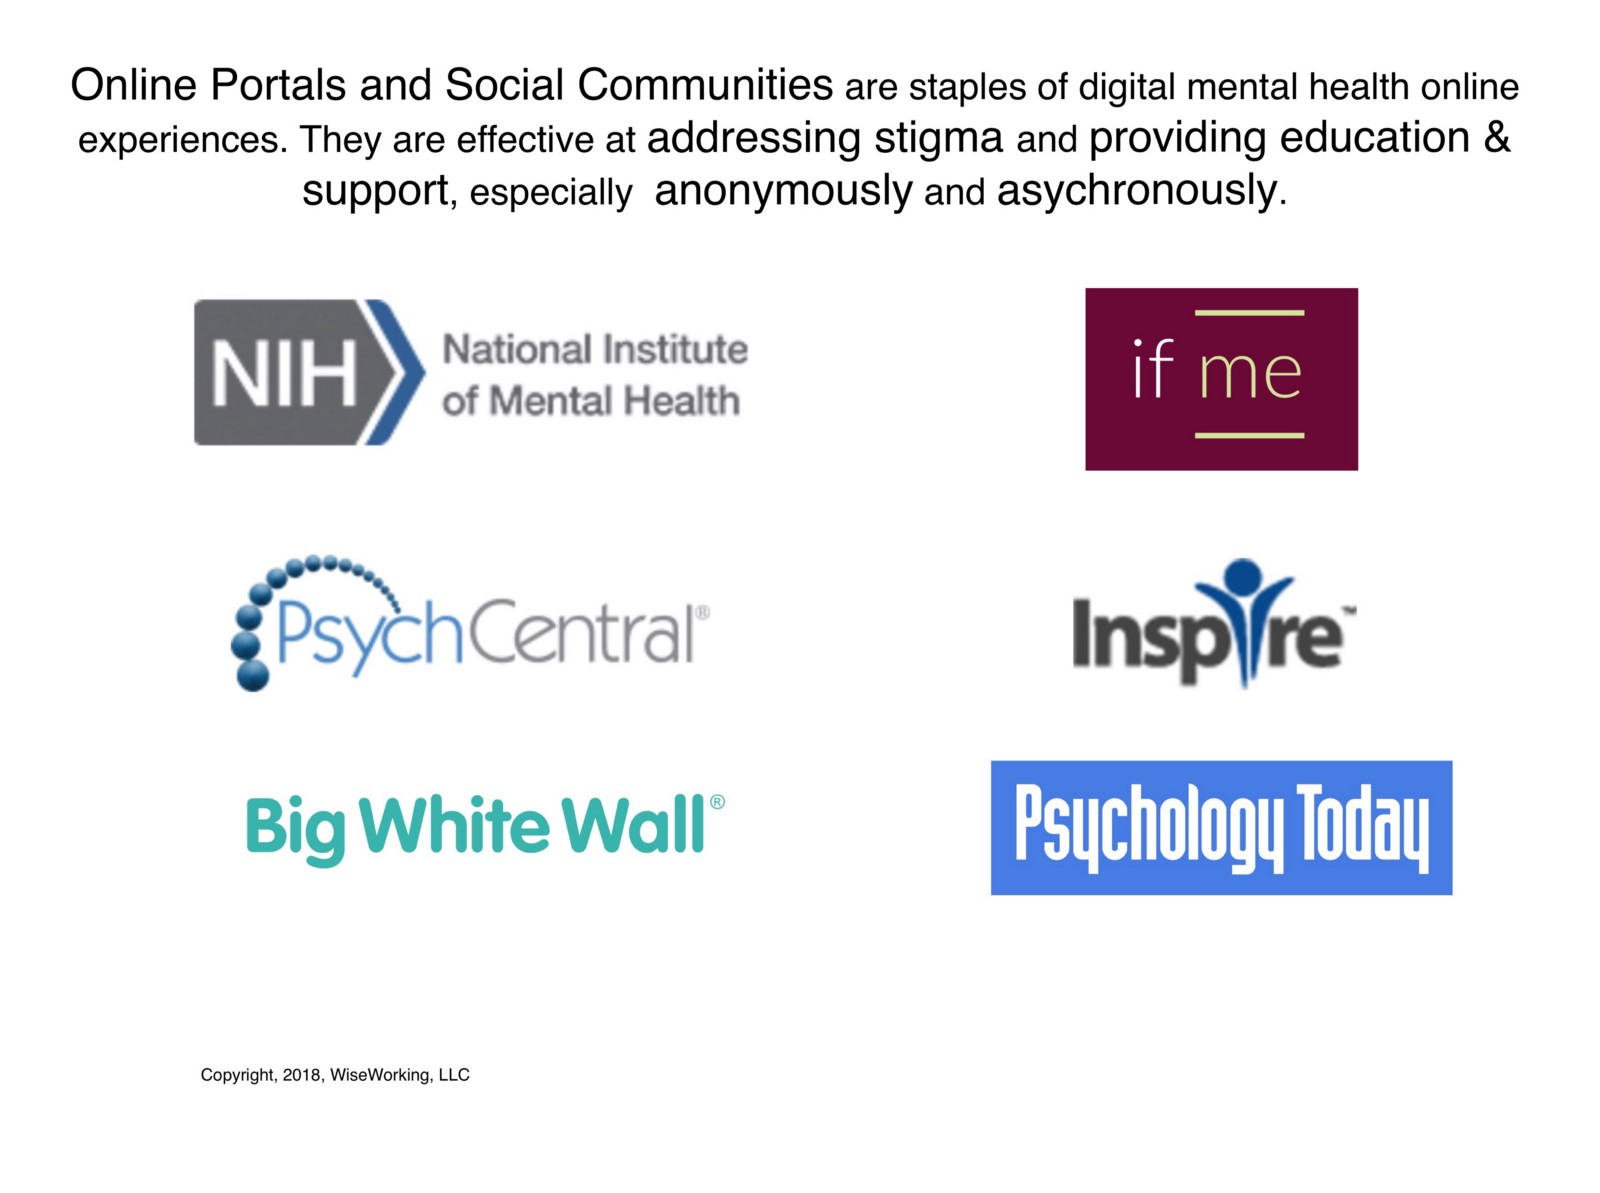 Online Portals Social Communities Staples For Education Support